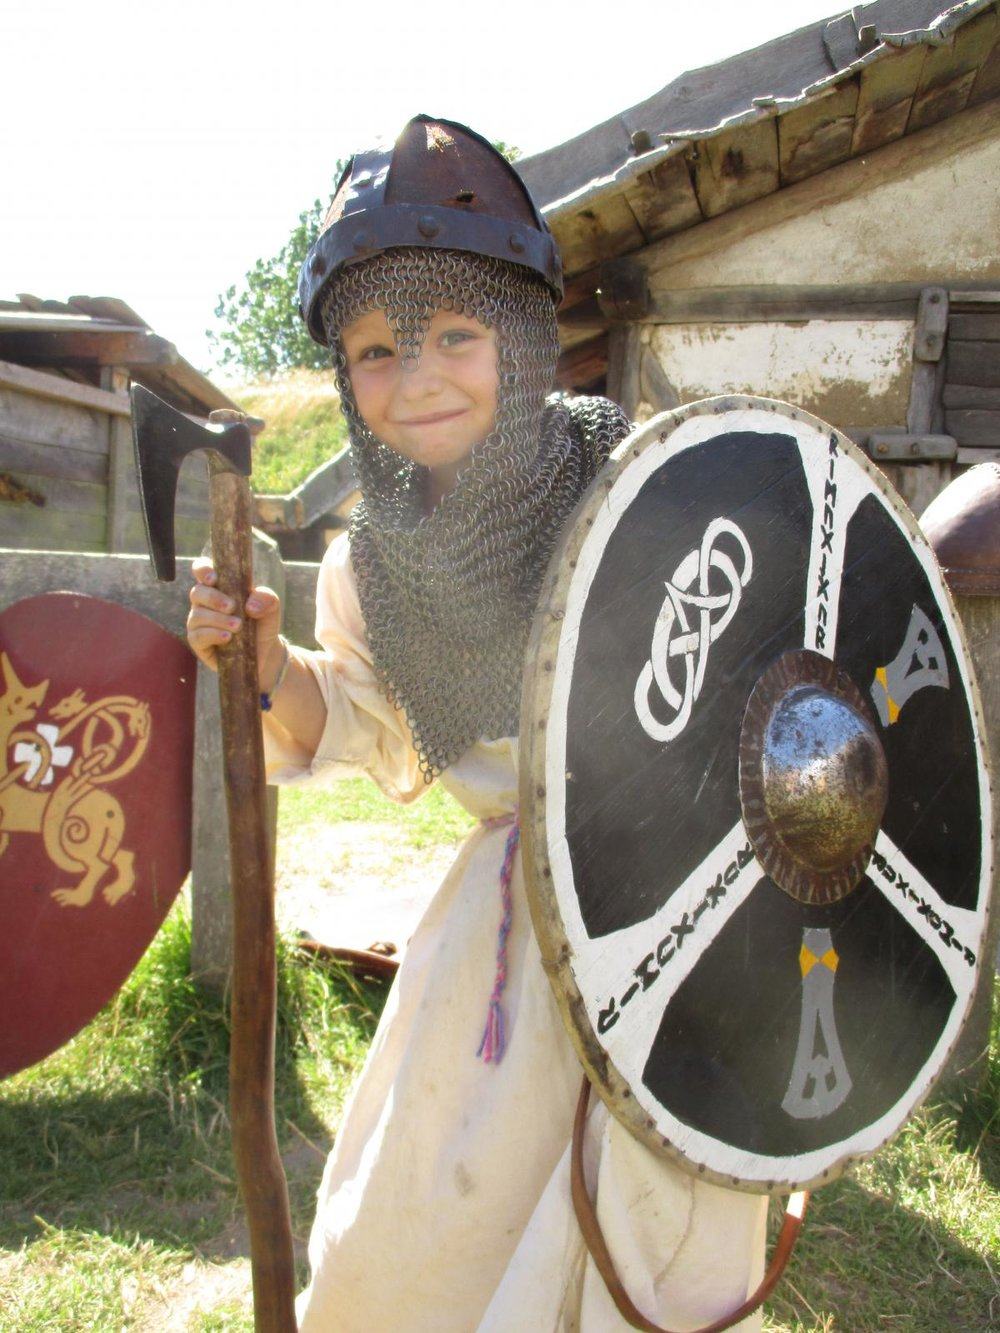 A boy dressed as a Vikings attending one of the Follow the Vikings roadshows